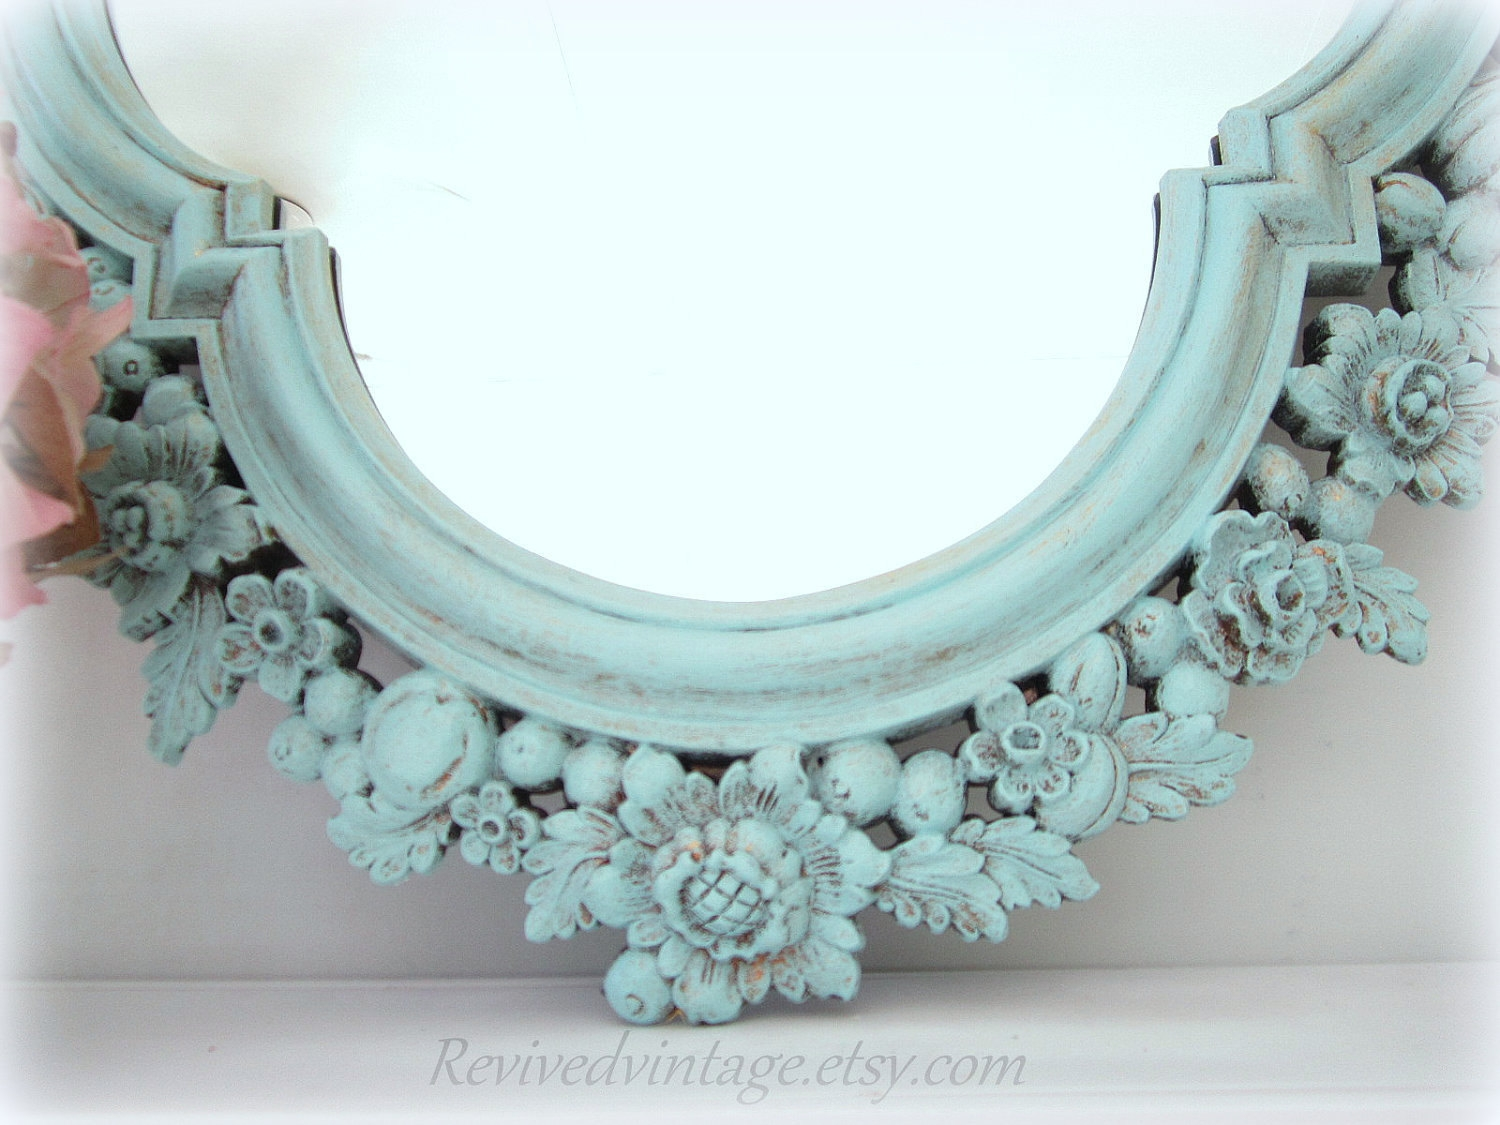 Decorative Vintage Mirrors For Sale Large Mirror Shab Chic For Vintage Mirrors (Image 6 of 15)